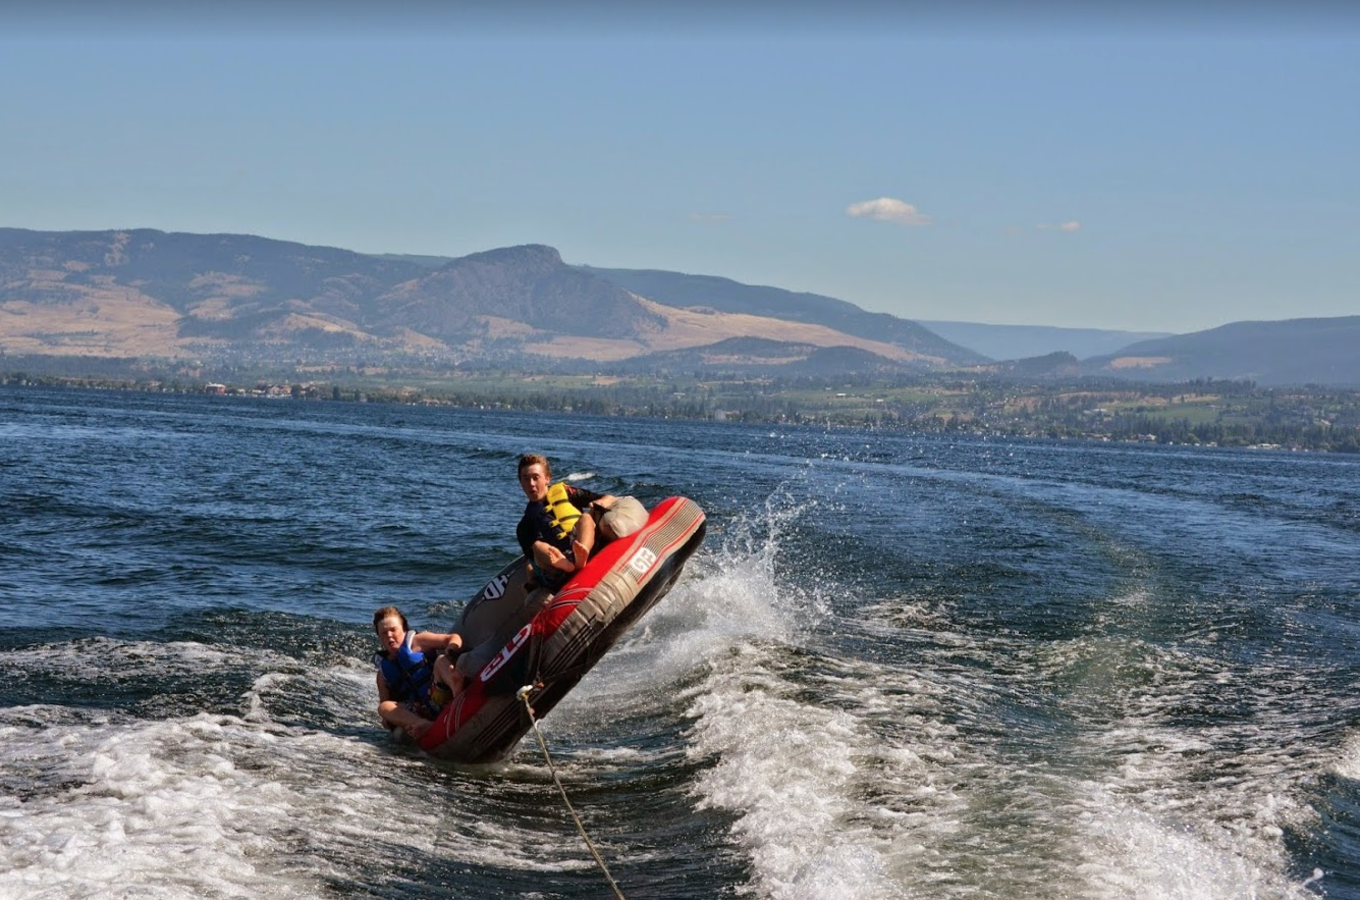 Tubing on Okanagan Lake